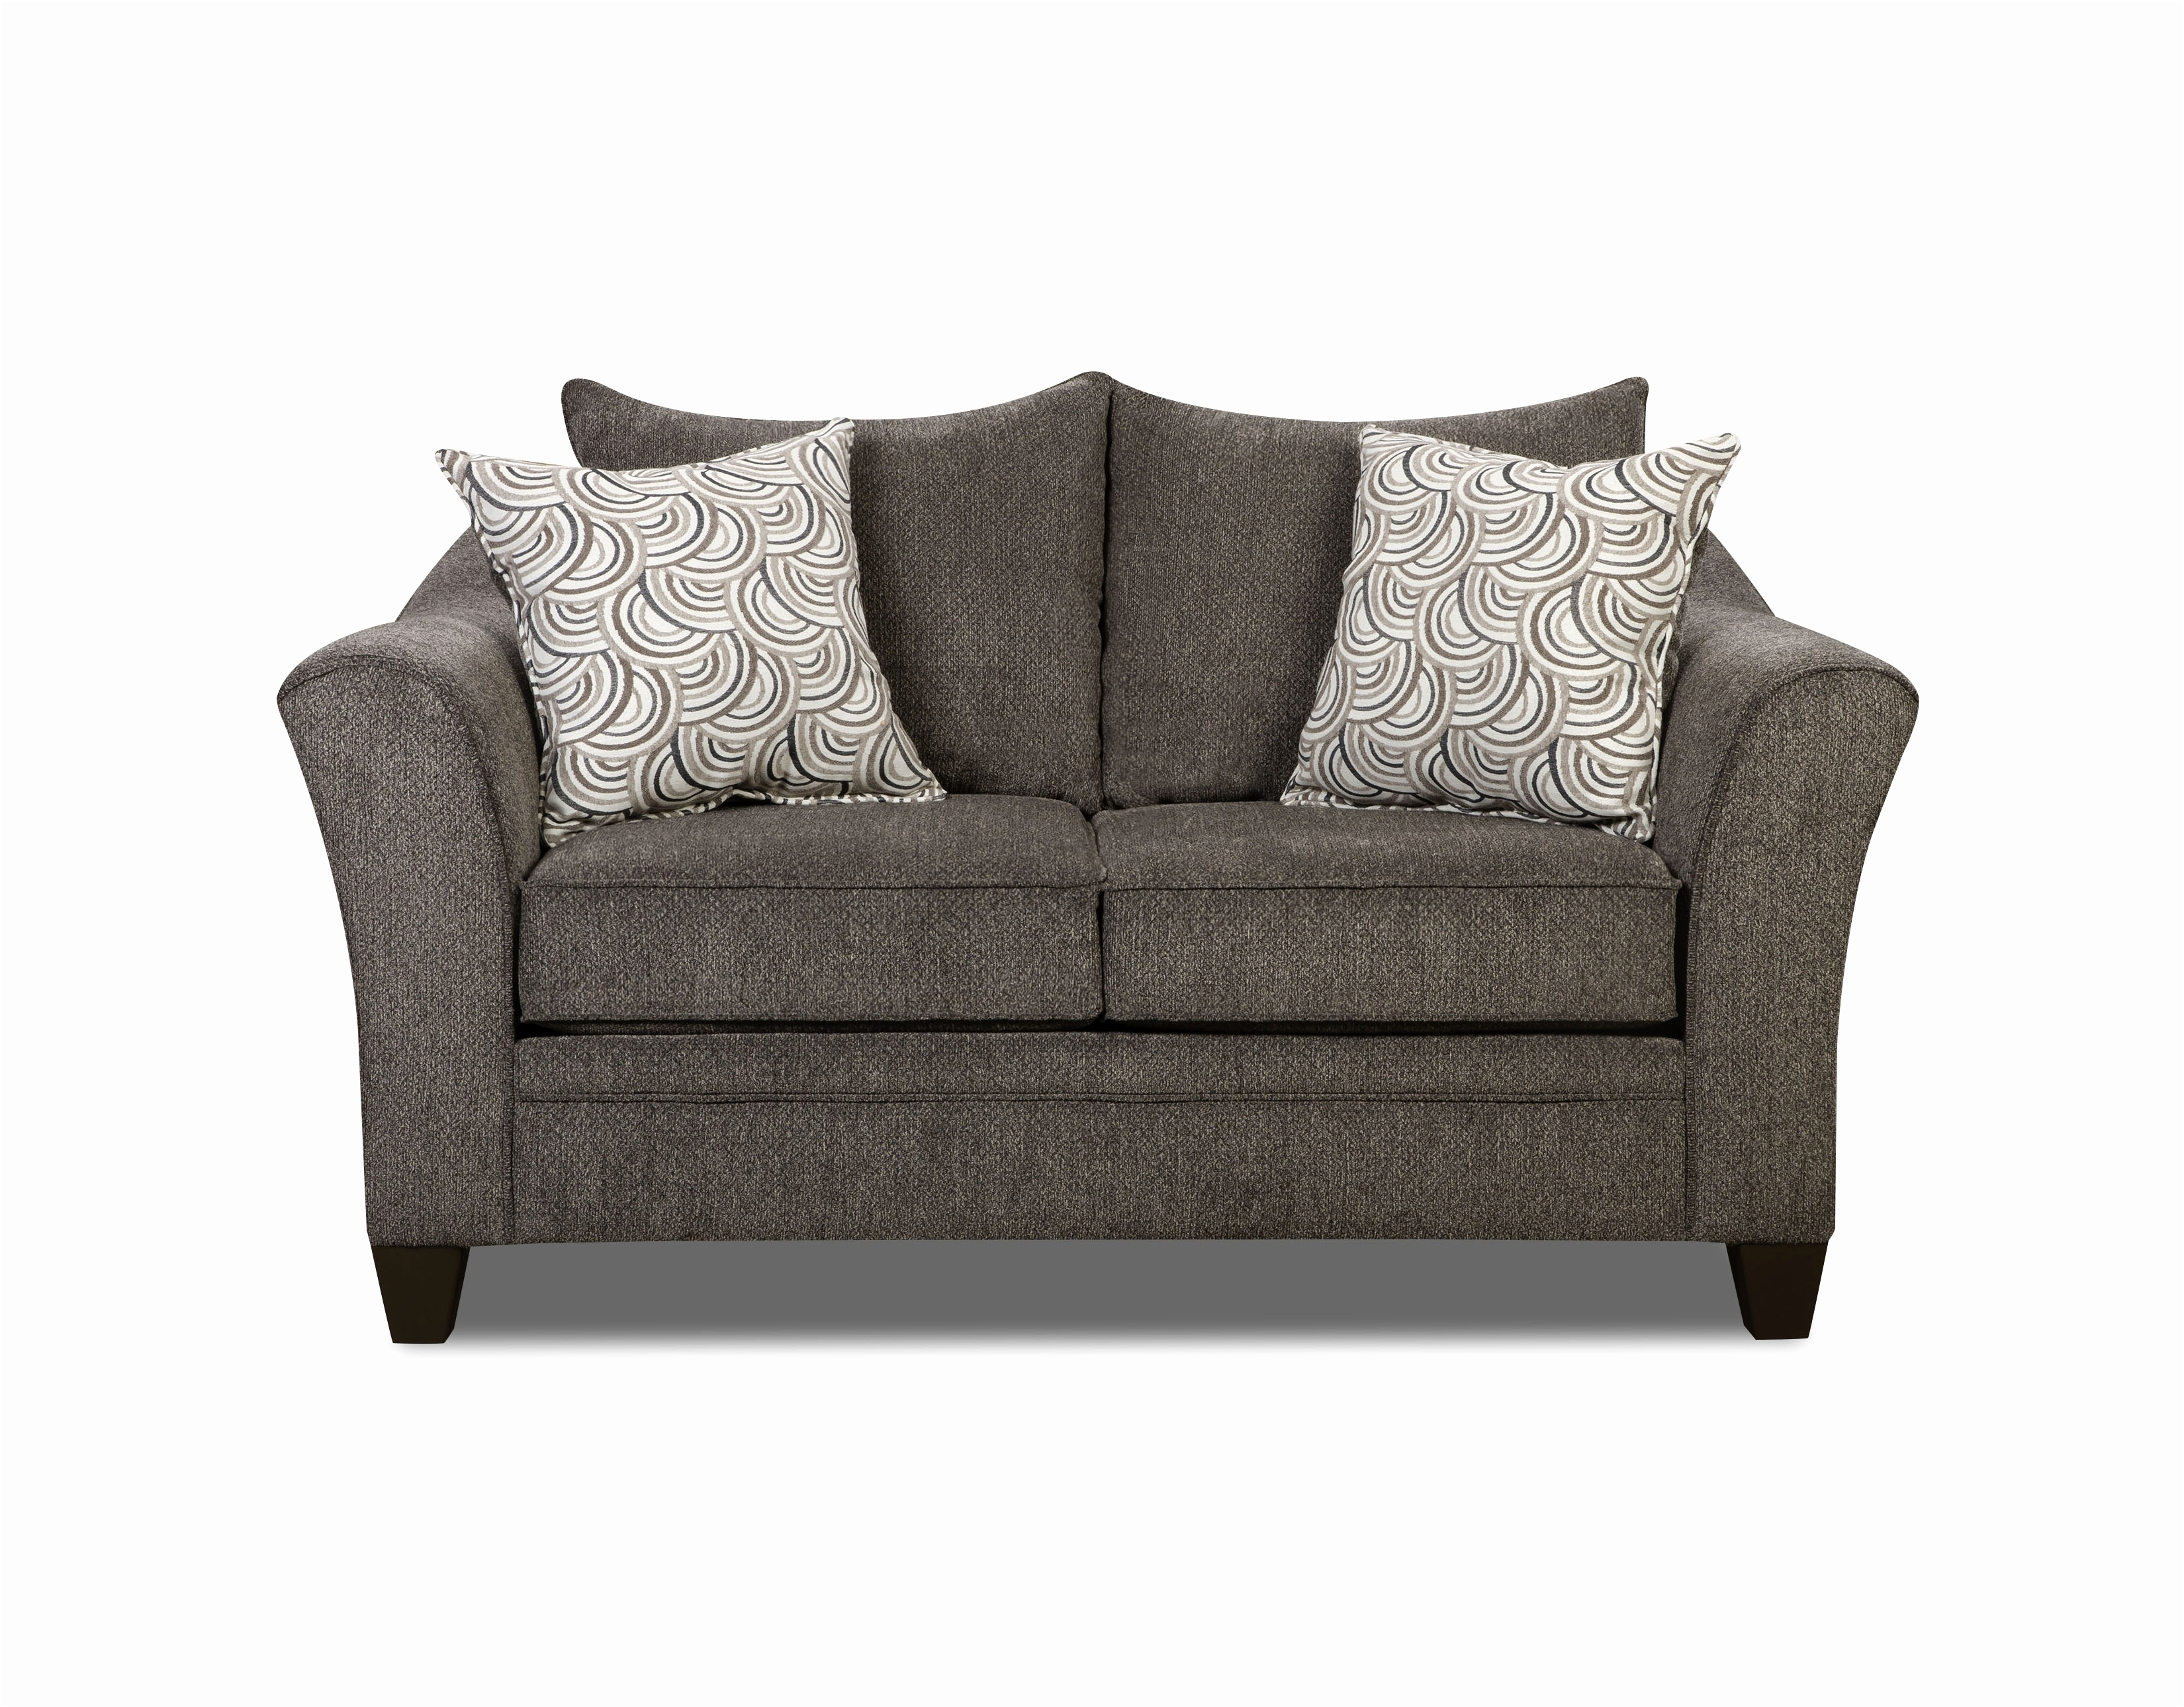 2018 Sectional Sofas At Sears Inside Fresh Sears Leather Sofa New – Intuisiblog (View 1 of 20)